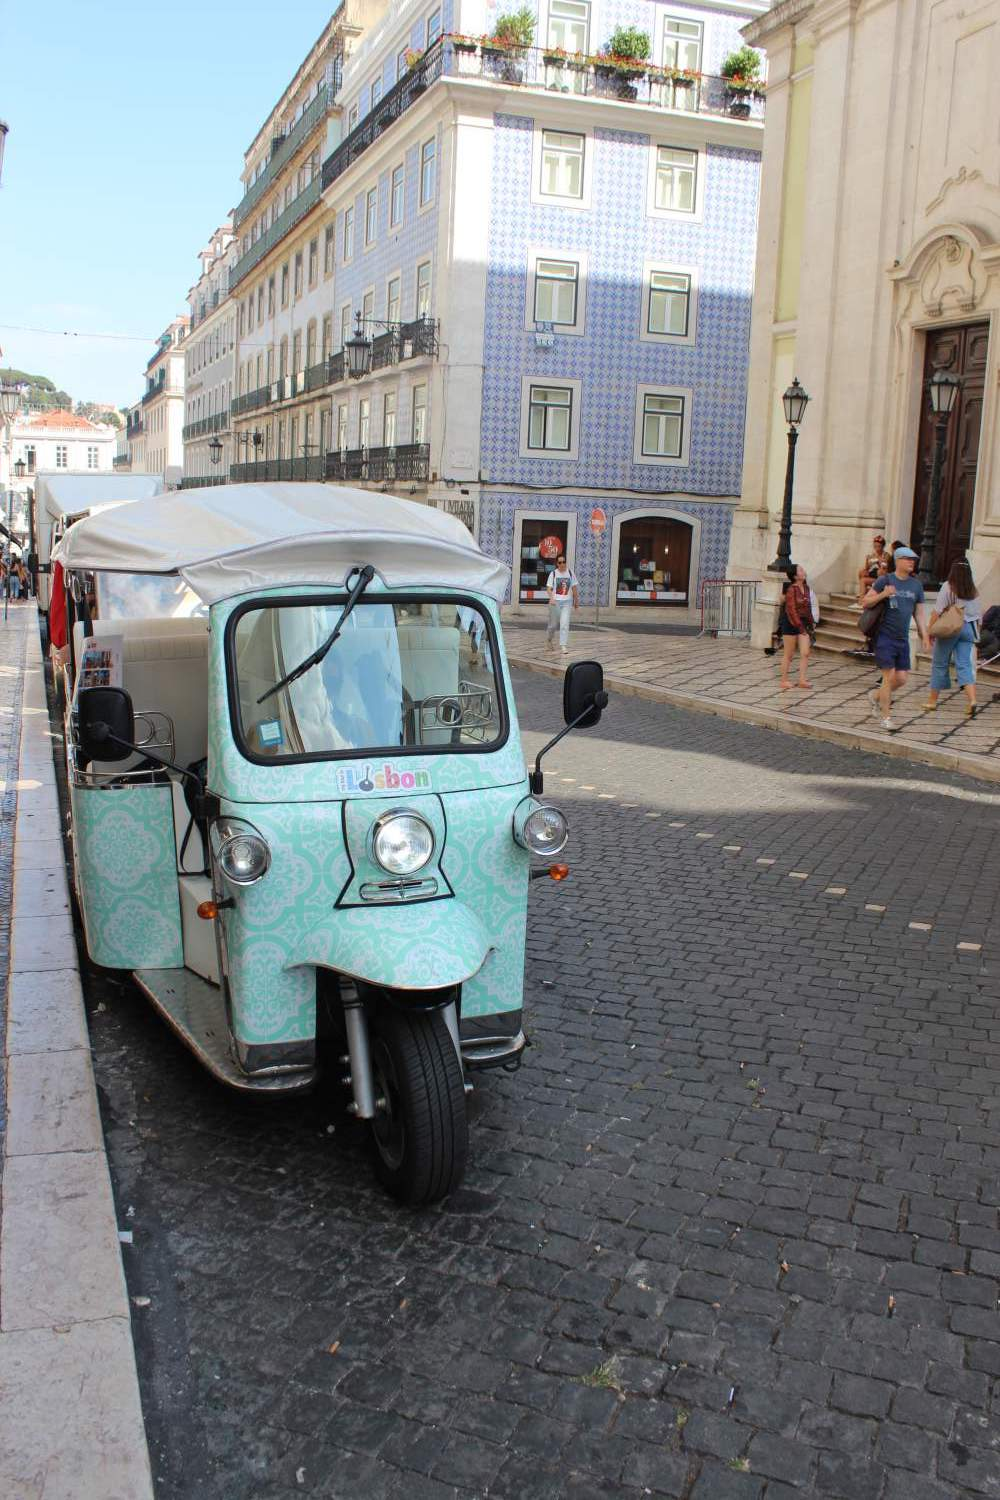 Small taxi in Lisbon, Portugal